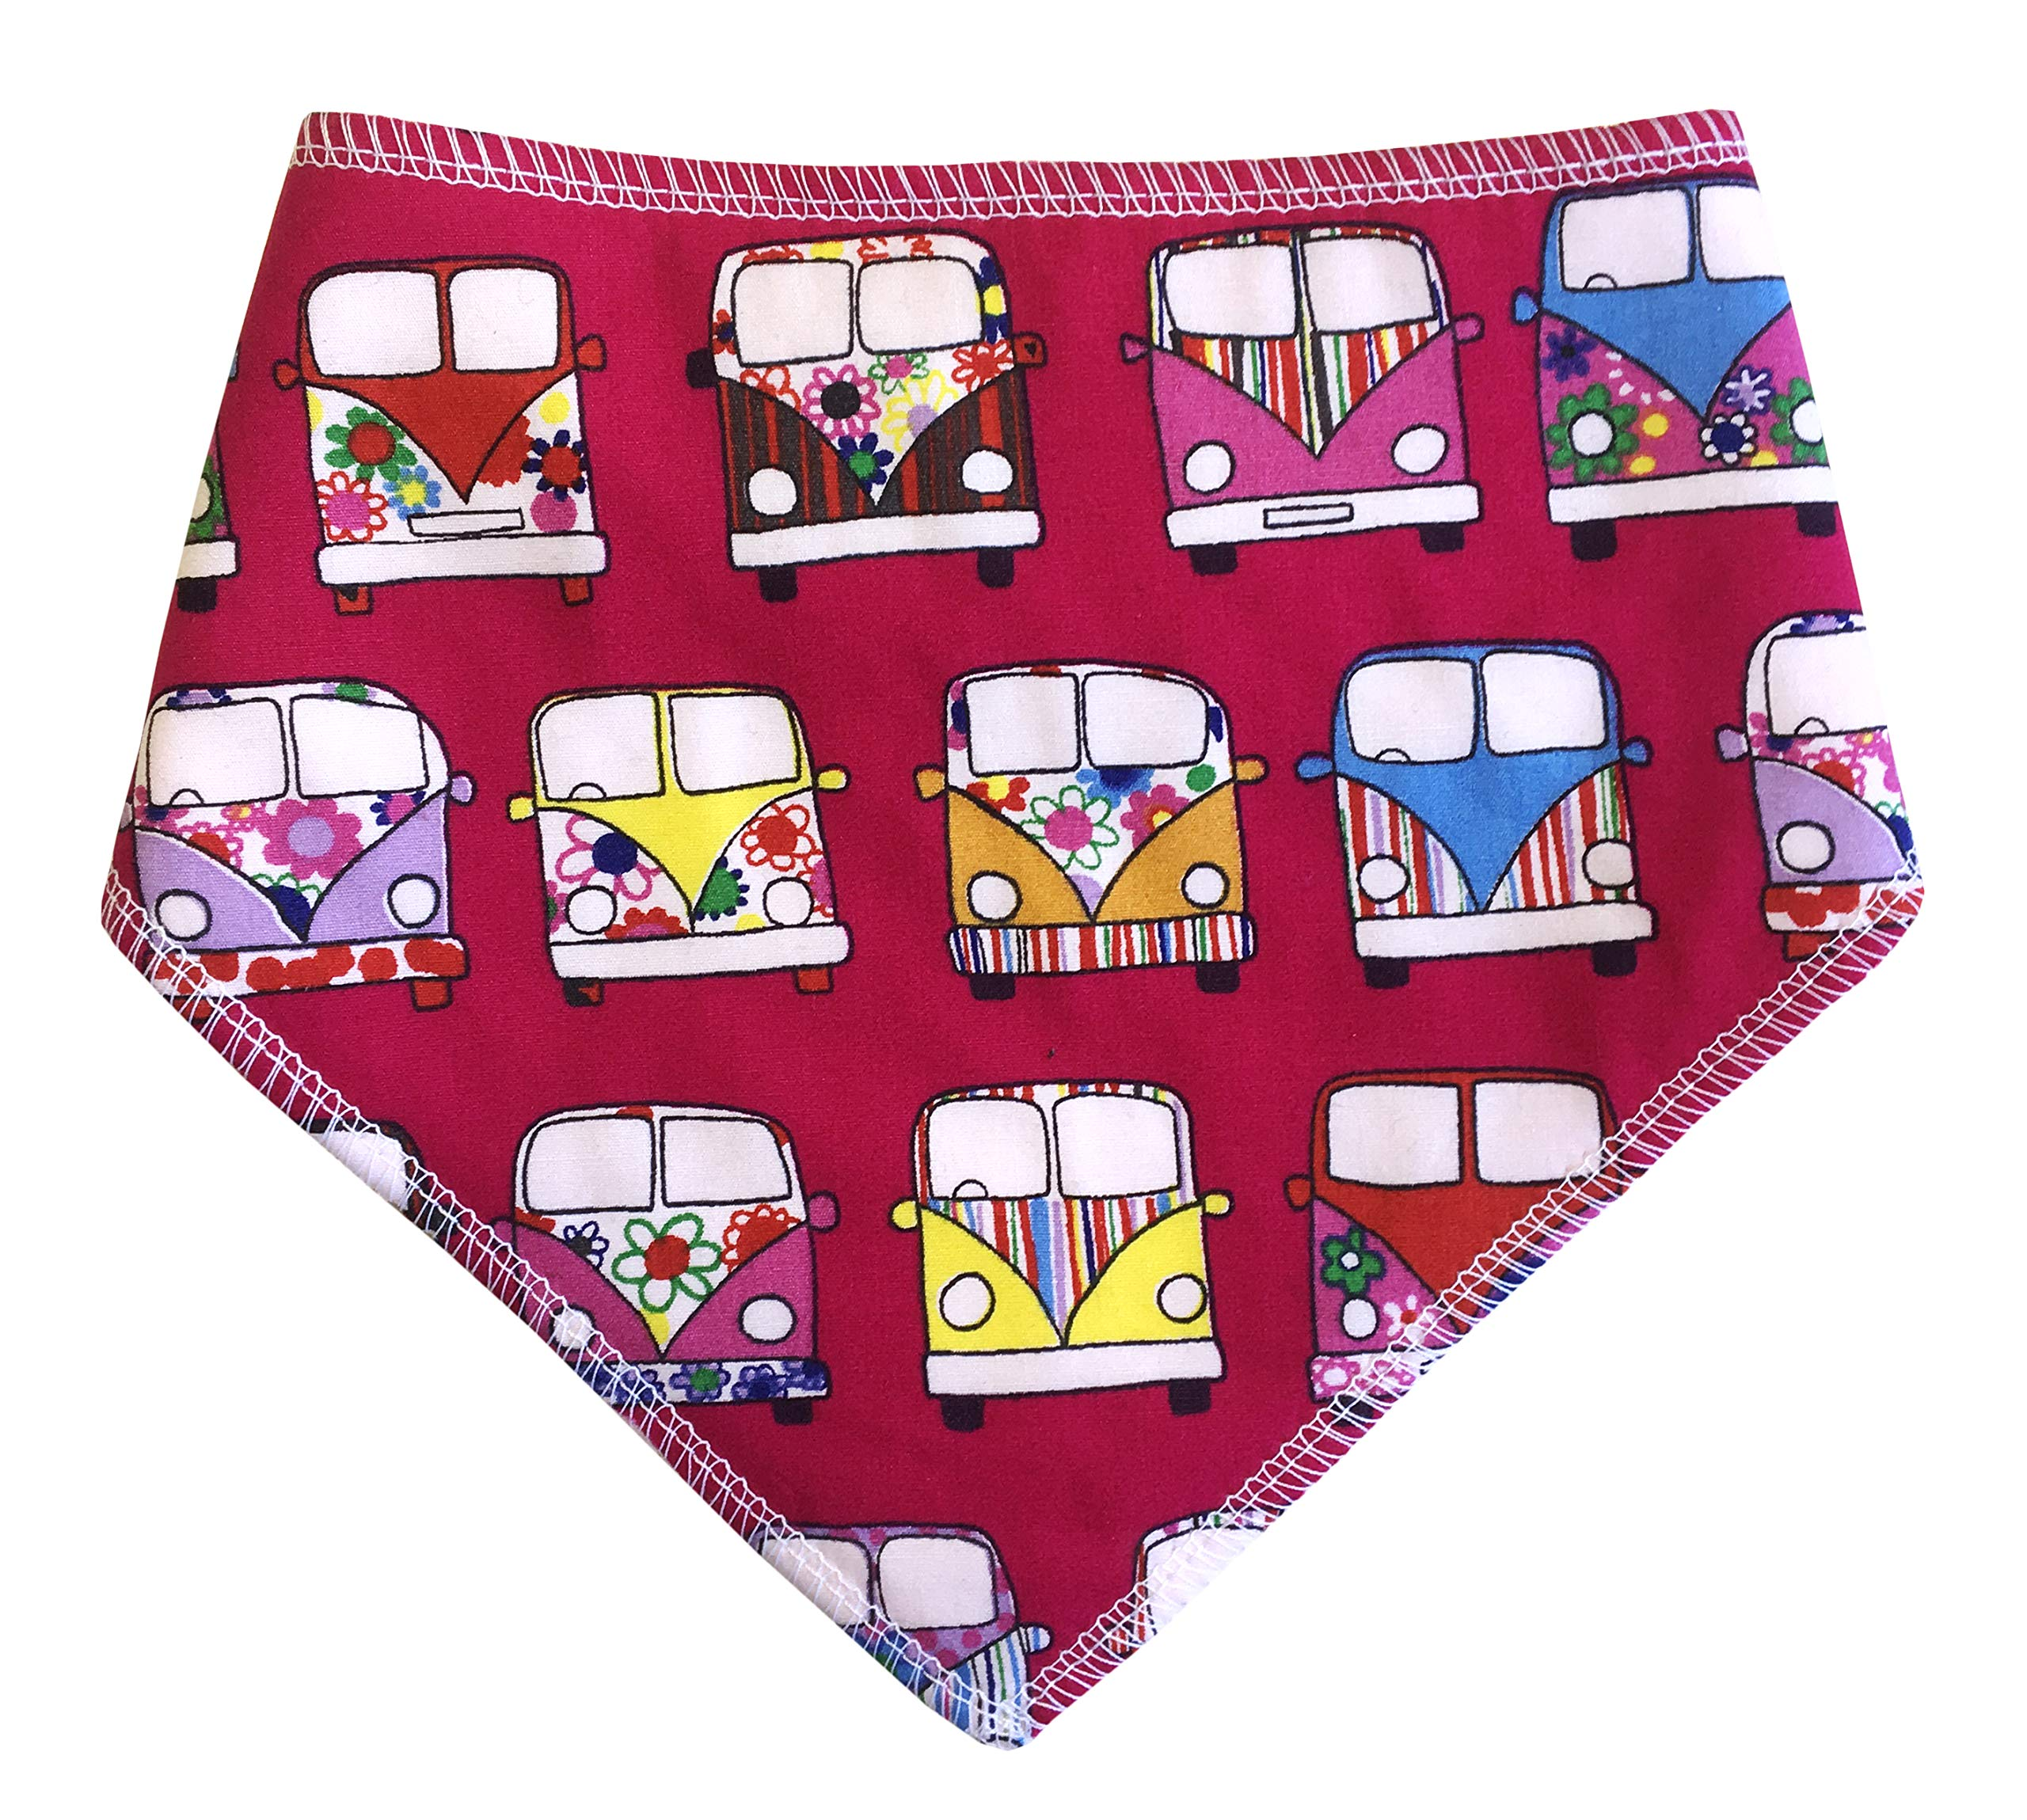 Spoilt Rotten Pets (S4) VW Camper Pink Bandana. Large Size Generally Fits Rottweilers and St Bernard Sized Dogs. Neck Size 23″ to 28″ Gorgeous Range of Patterns & Colours. (VW Camper Pink)